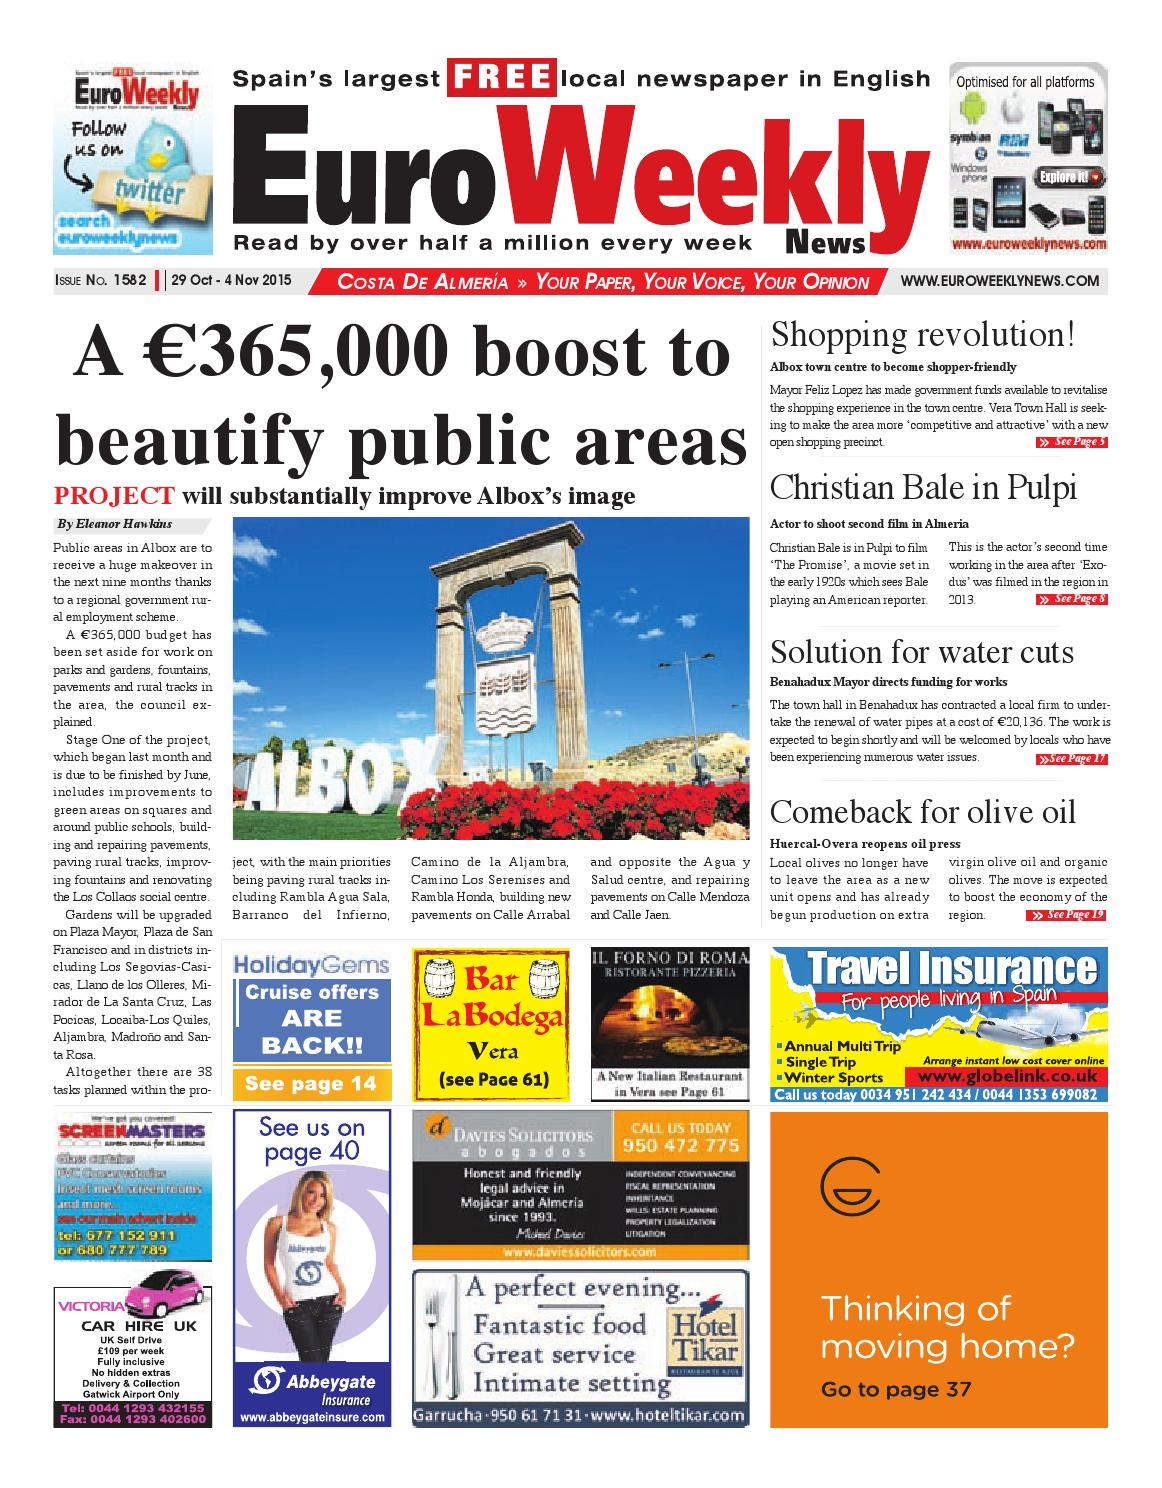 Euro Weekly News Costa De Almeria 29 October 4 November 2015  # Rogelio Muebles San Rafael